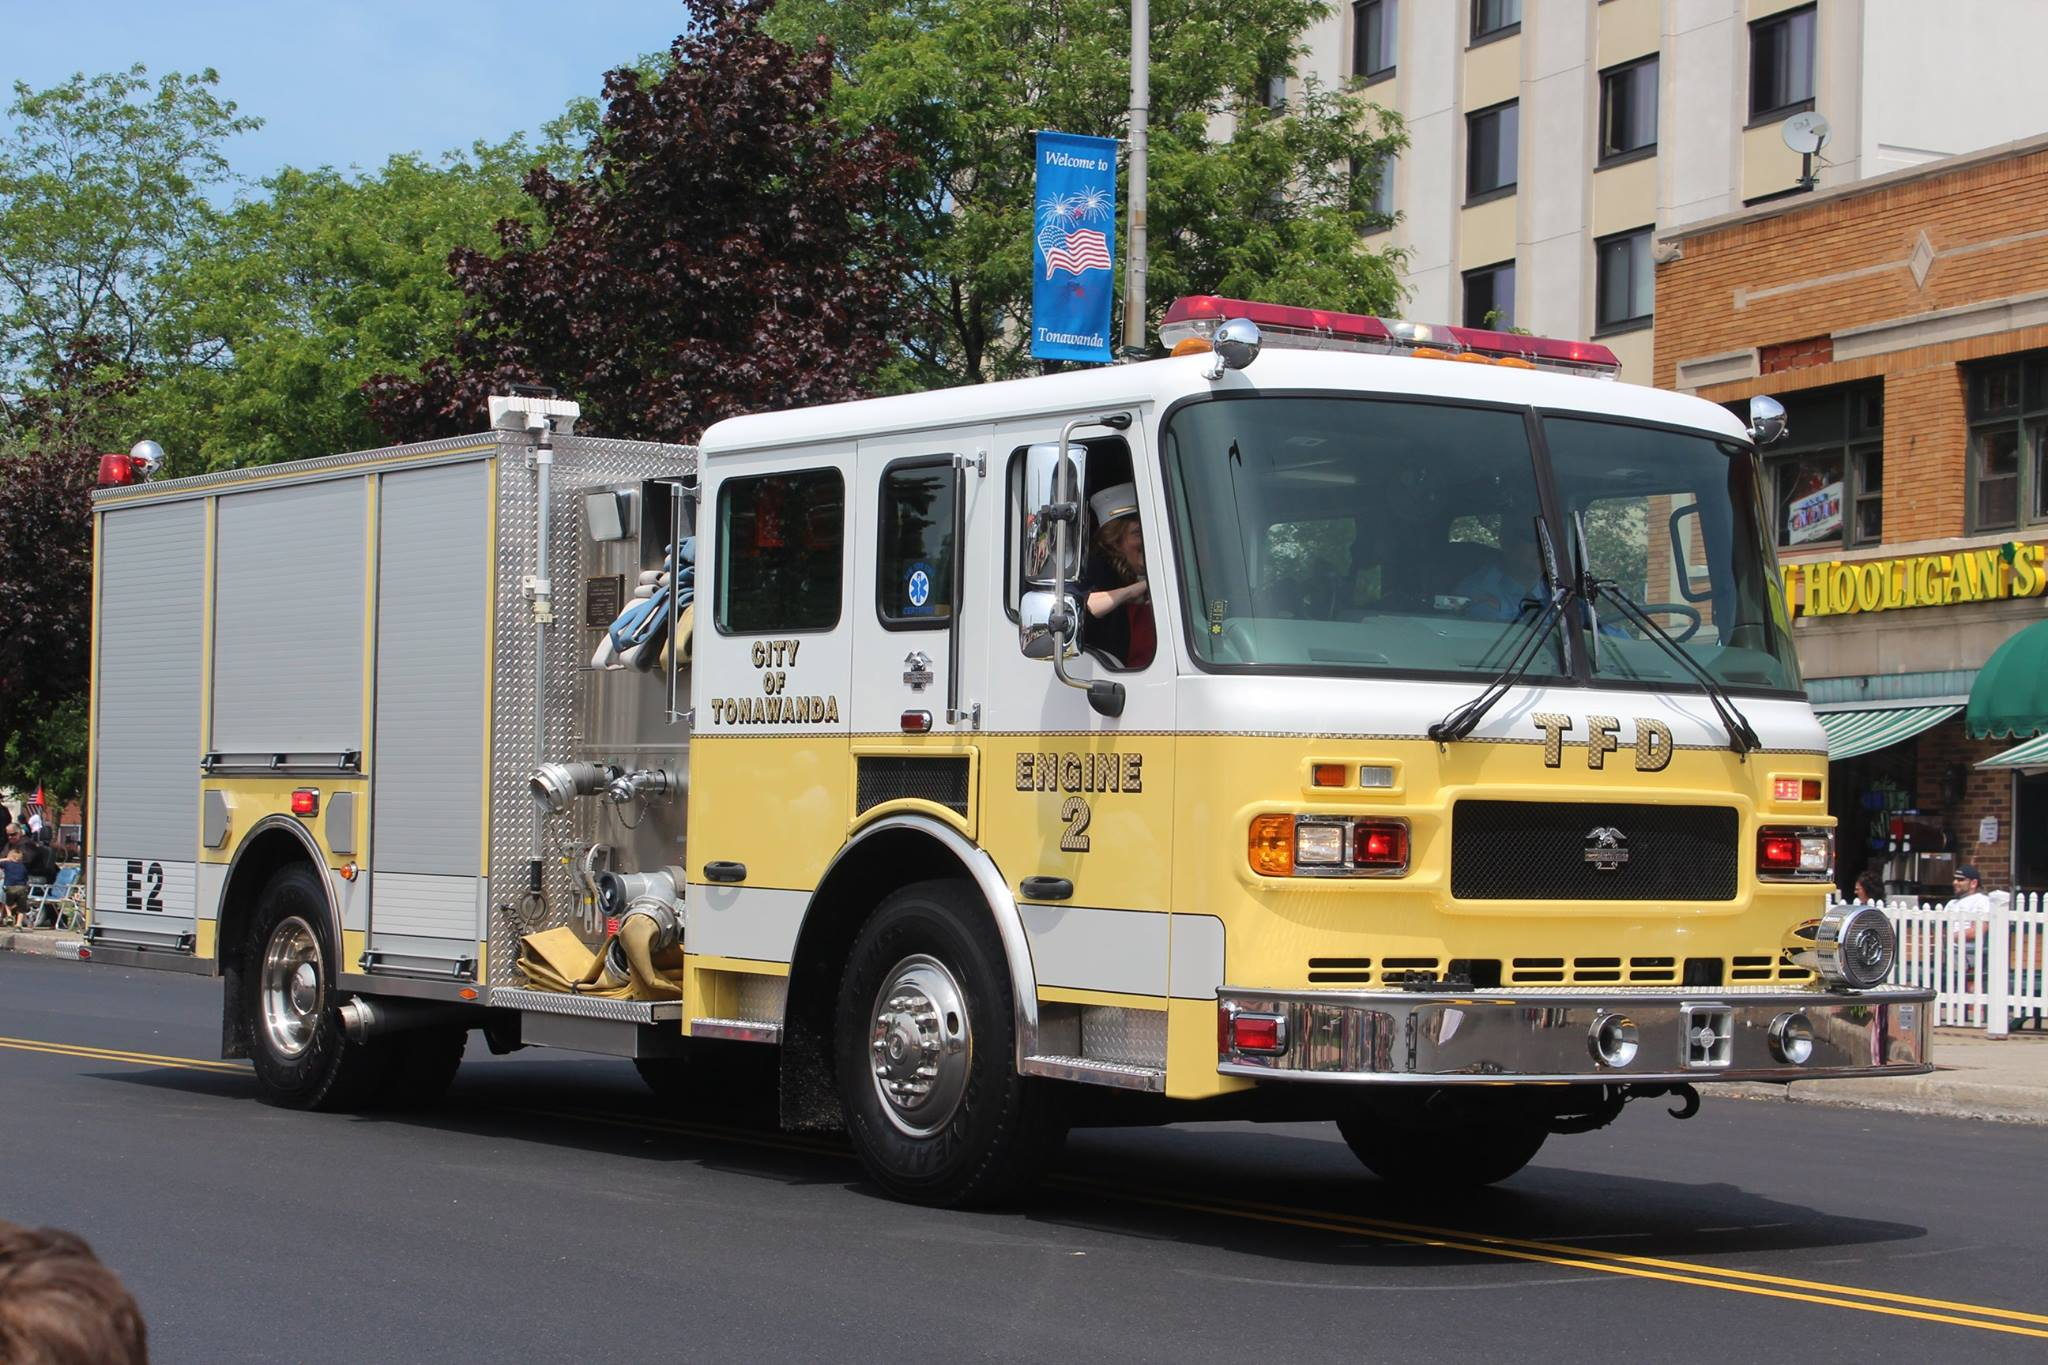 Fire Department - Map of new york state fire districts